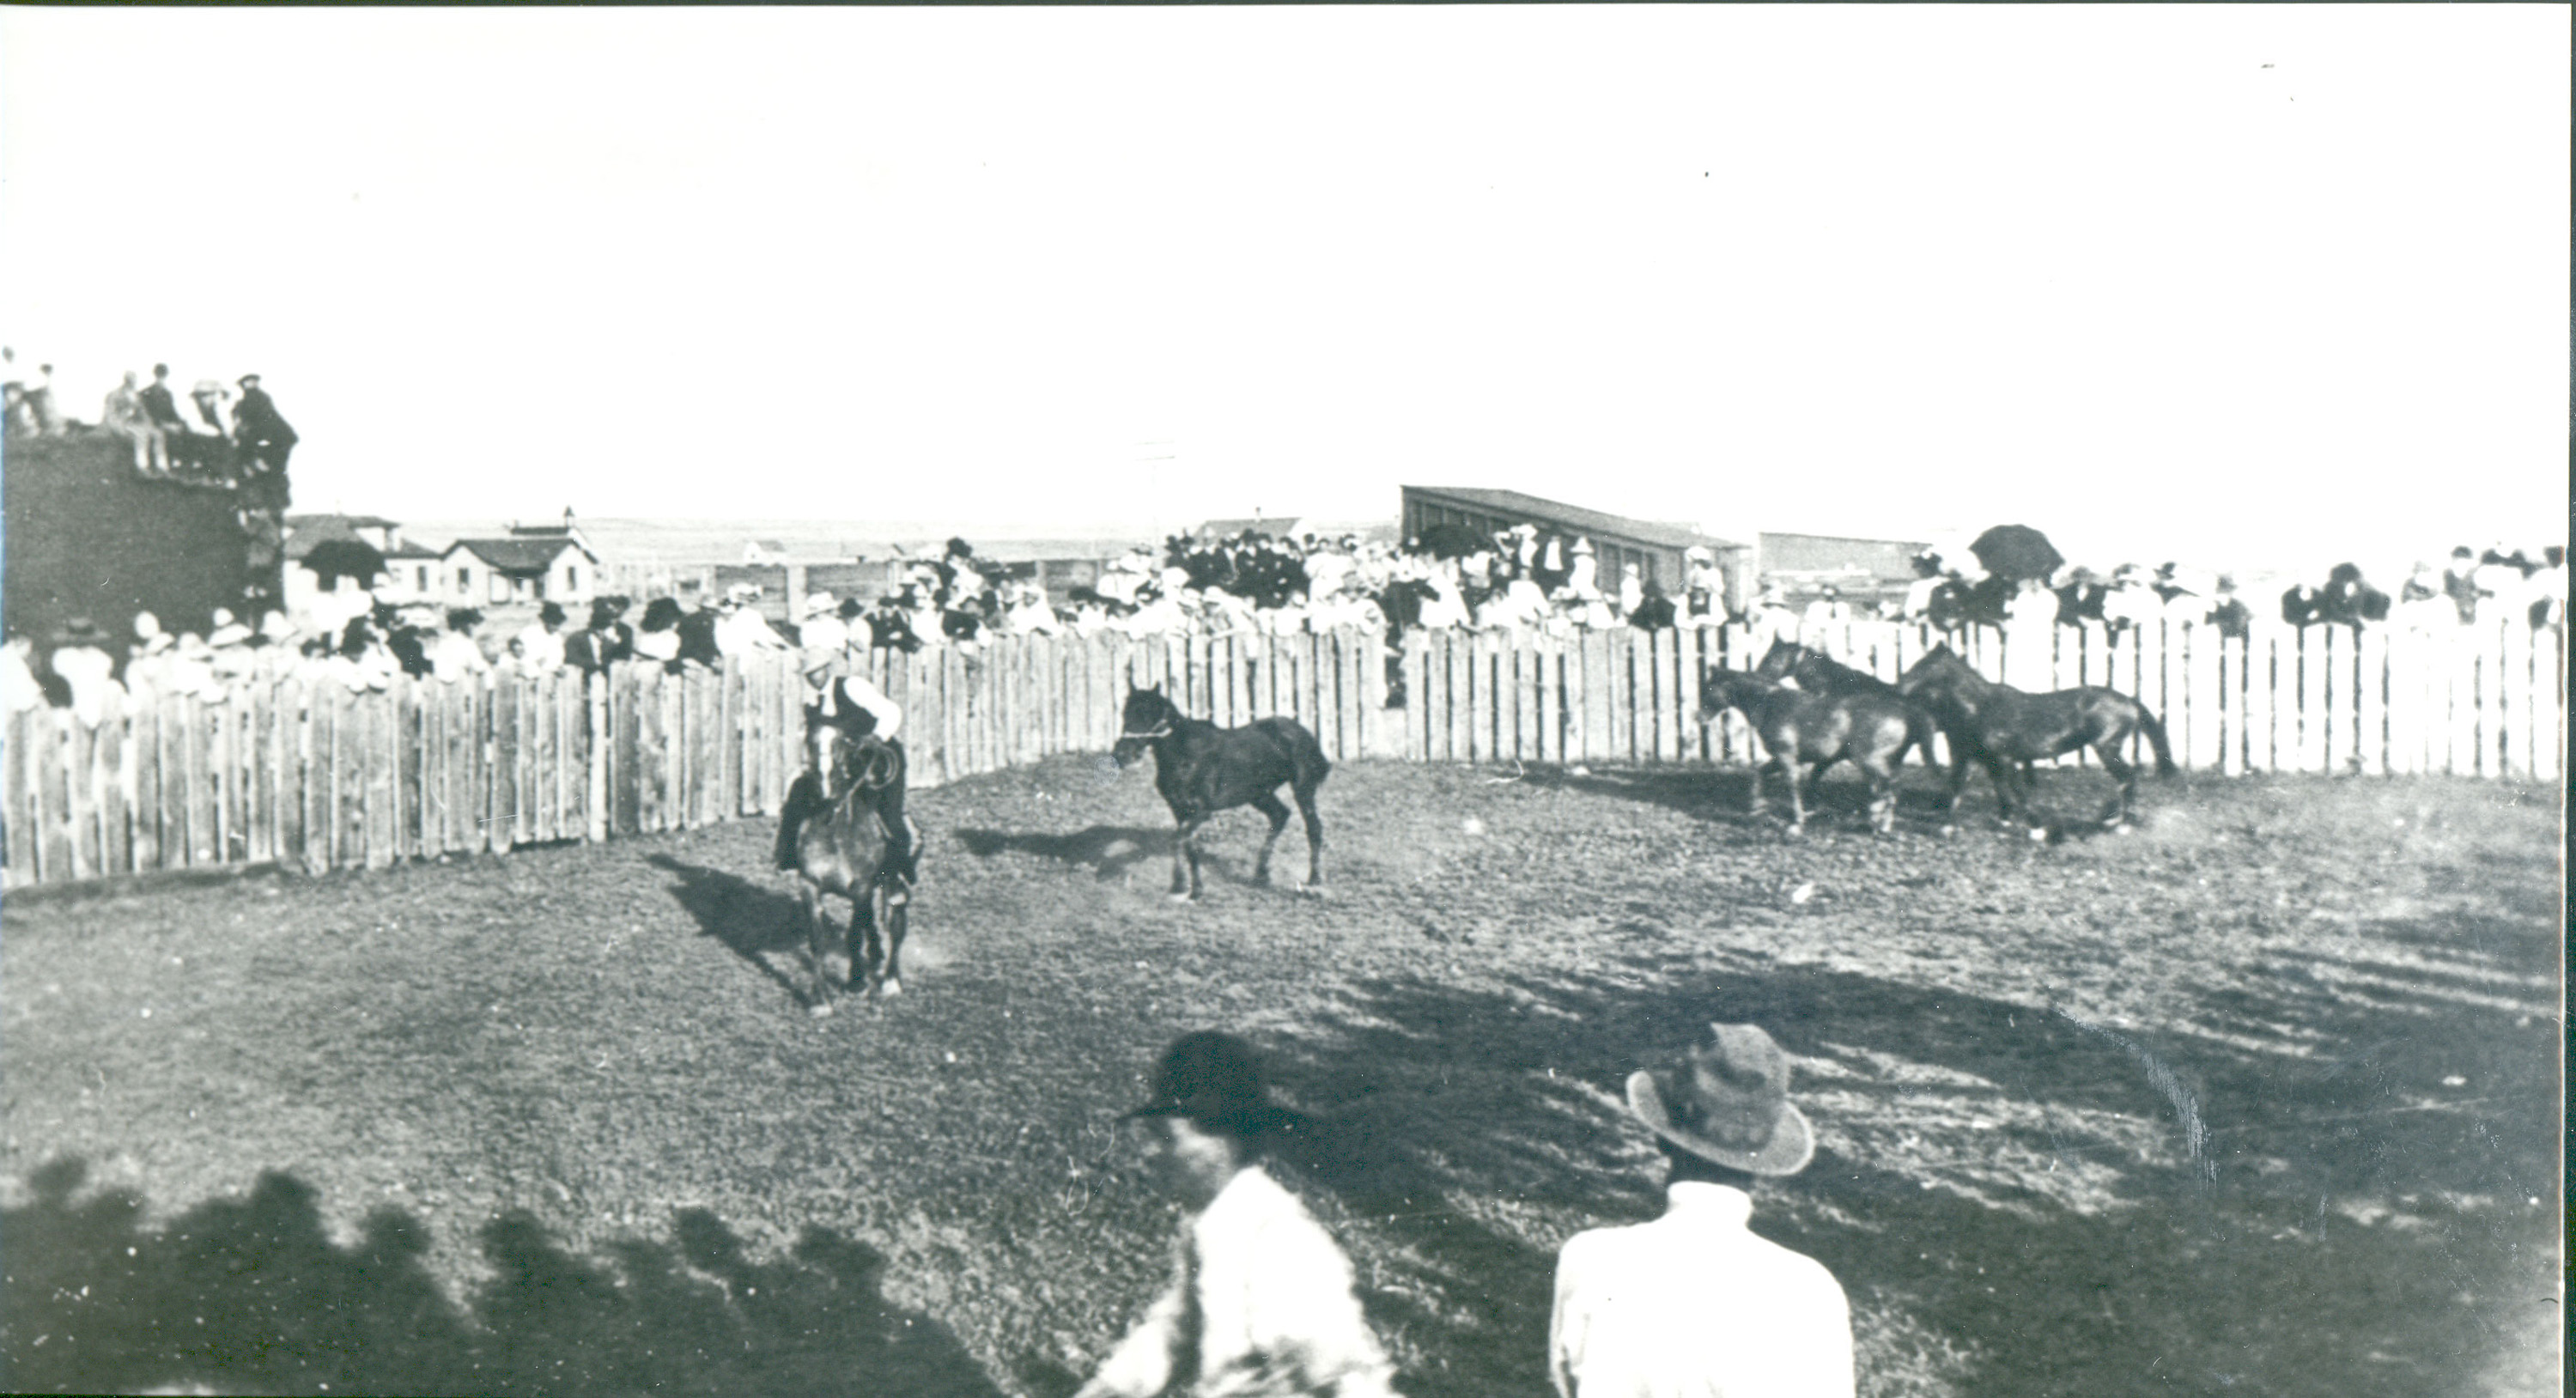 Arapahoe County's First Rodeo in Deertrail